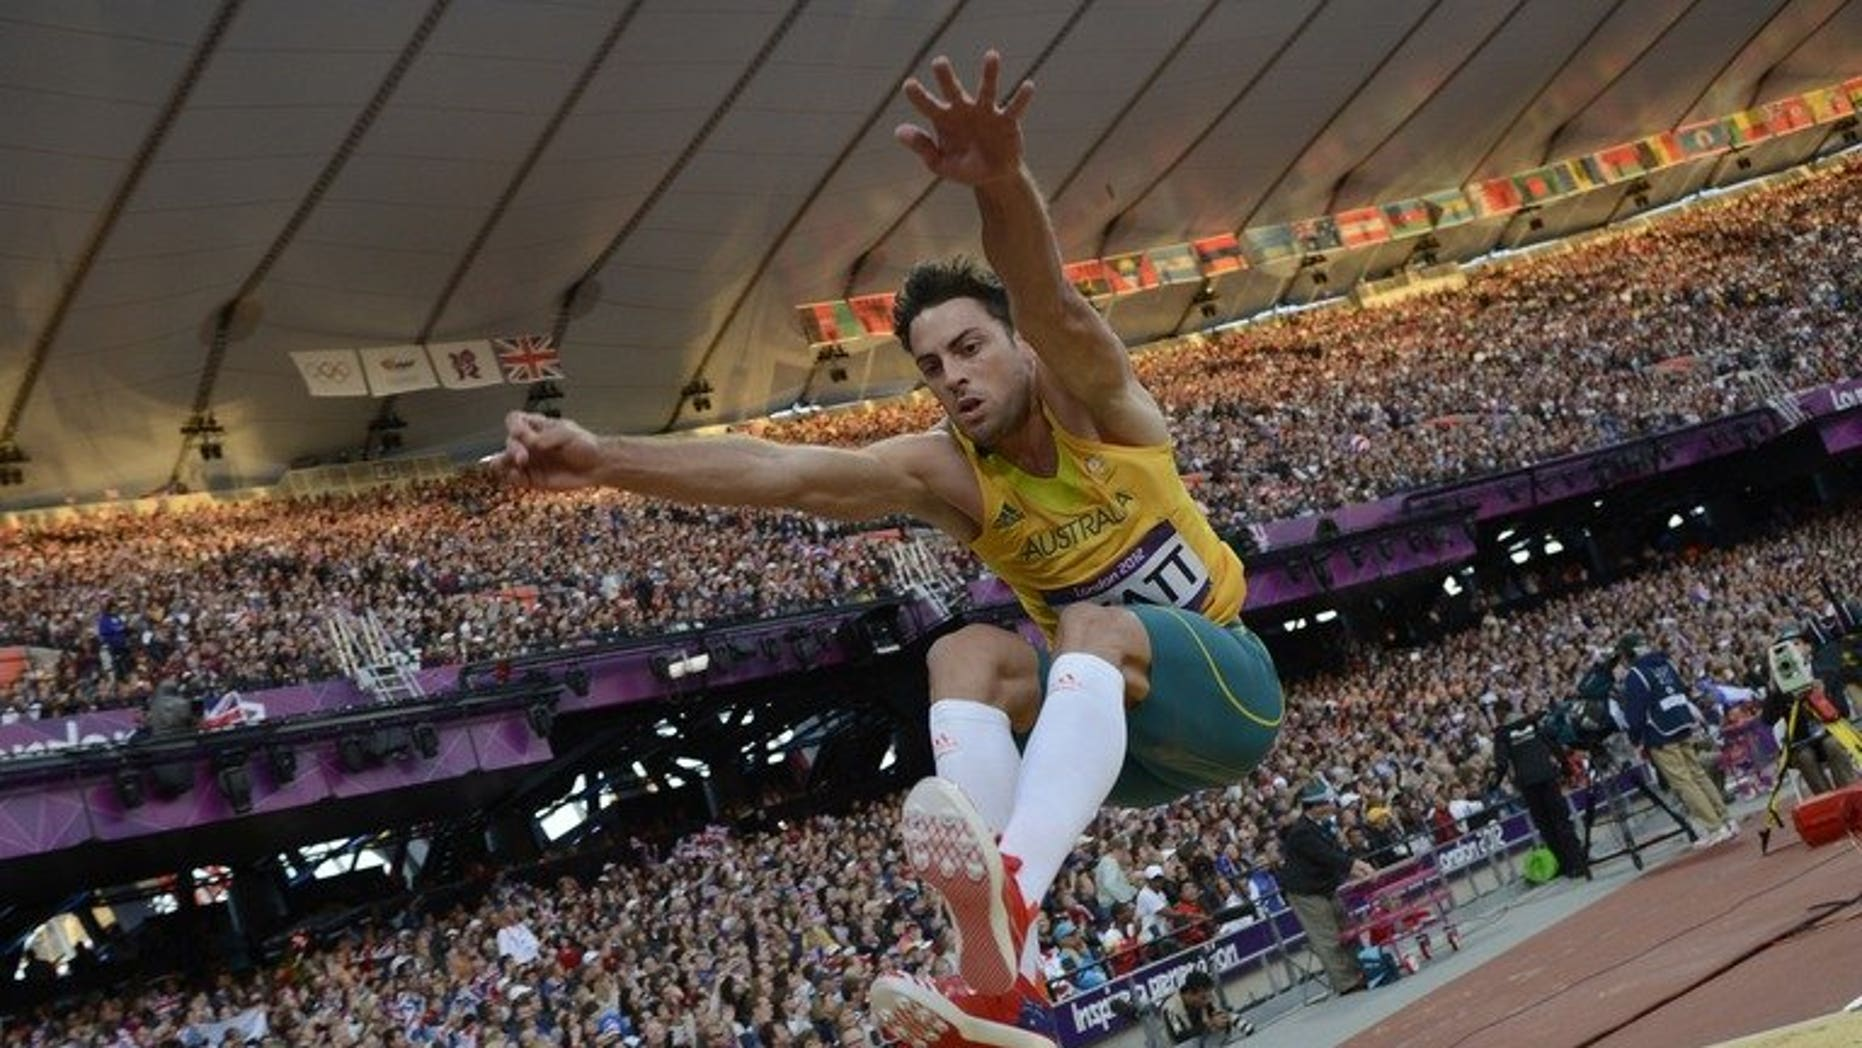 Australia's Mitchell Watt competes during the London Olympics men's long-jump qualifying rounds on August 3, 2012. He on Tuesday pulled out of the Moscow world championships after an injury-plagued build-up.